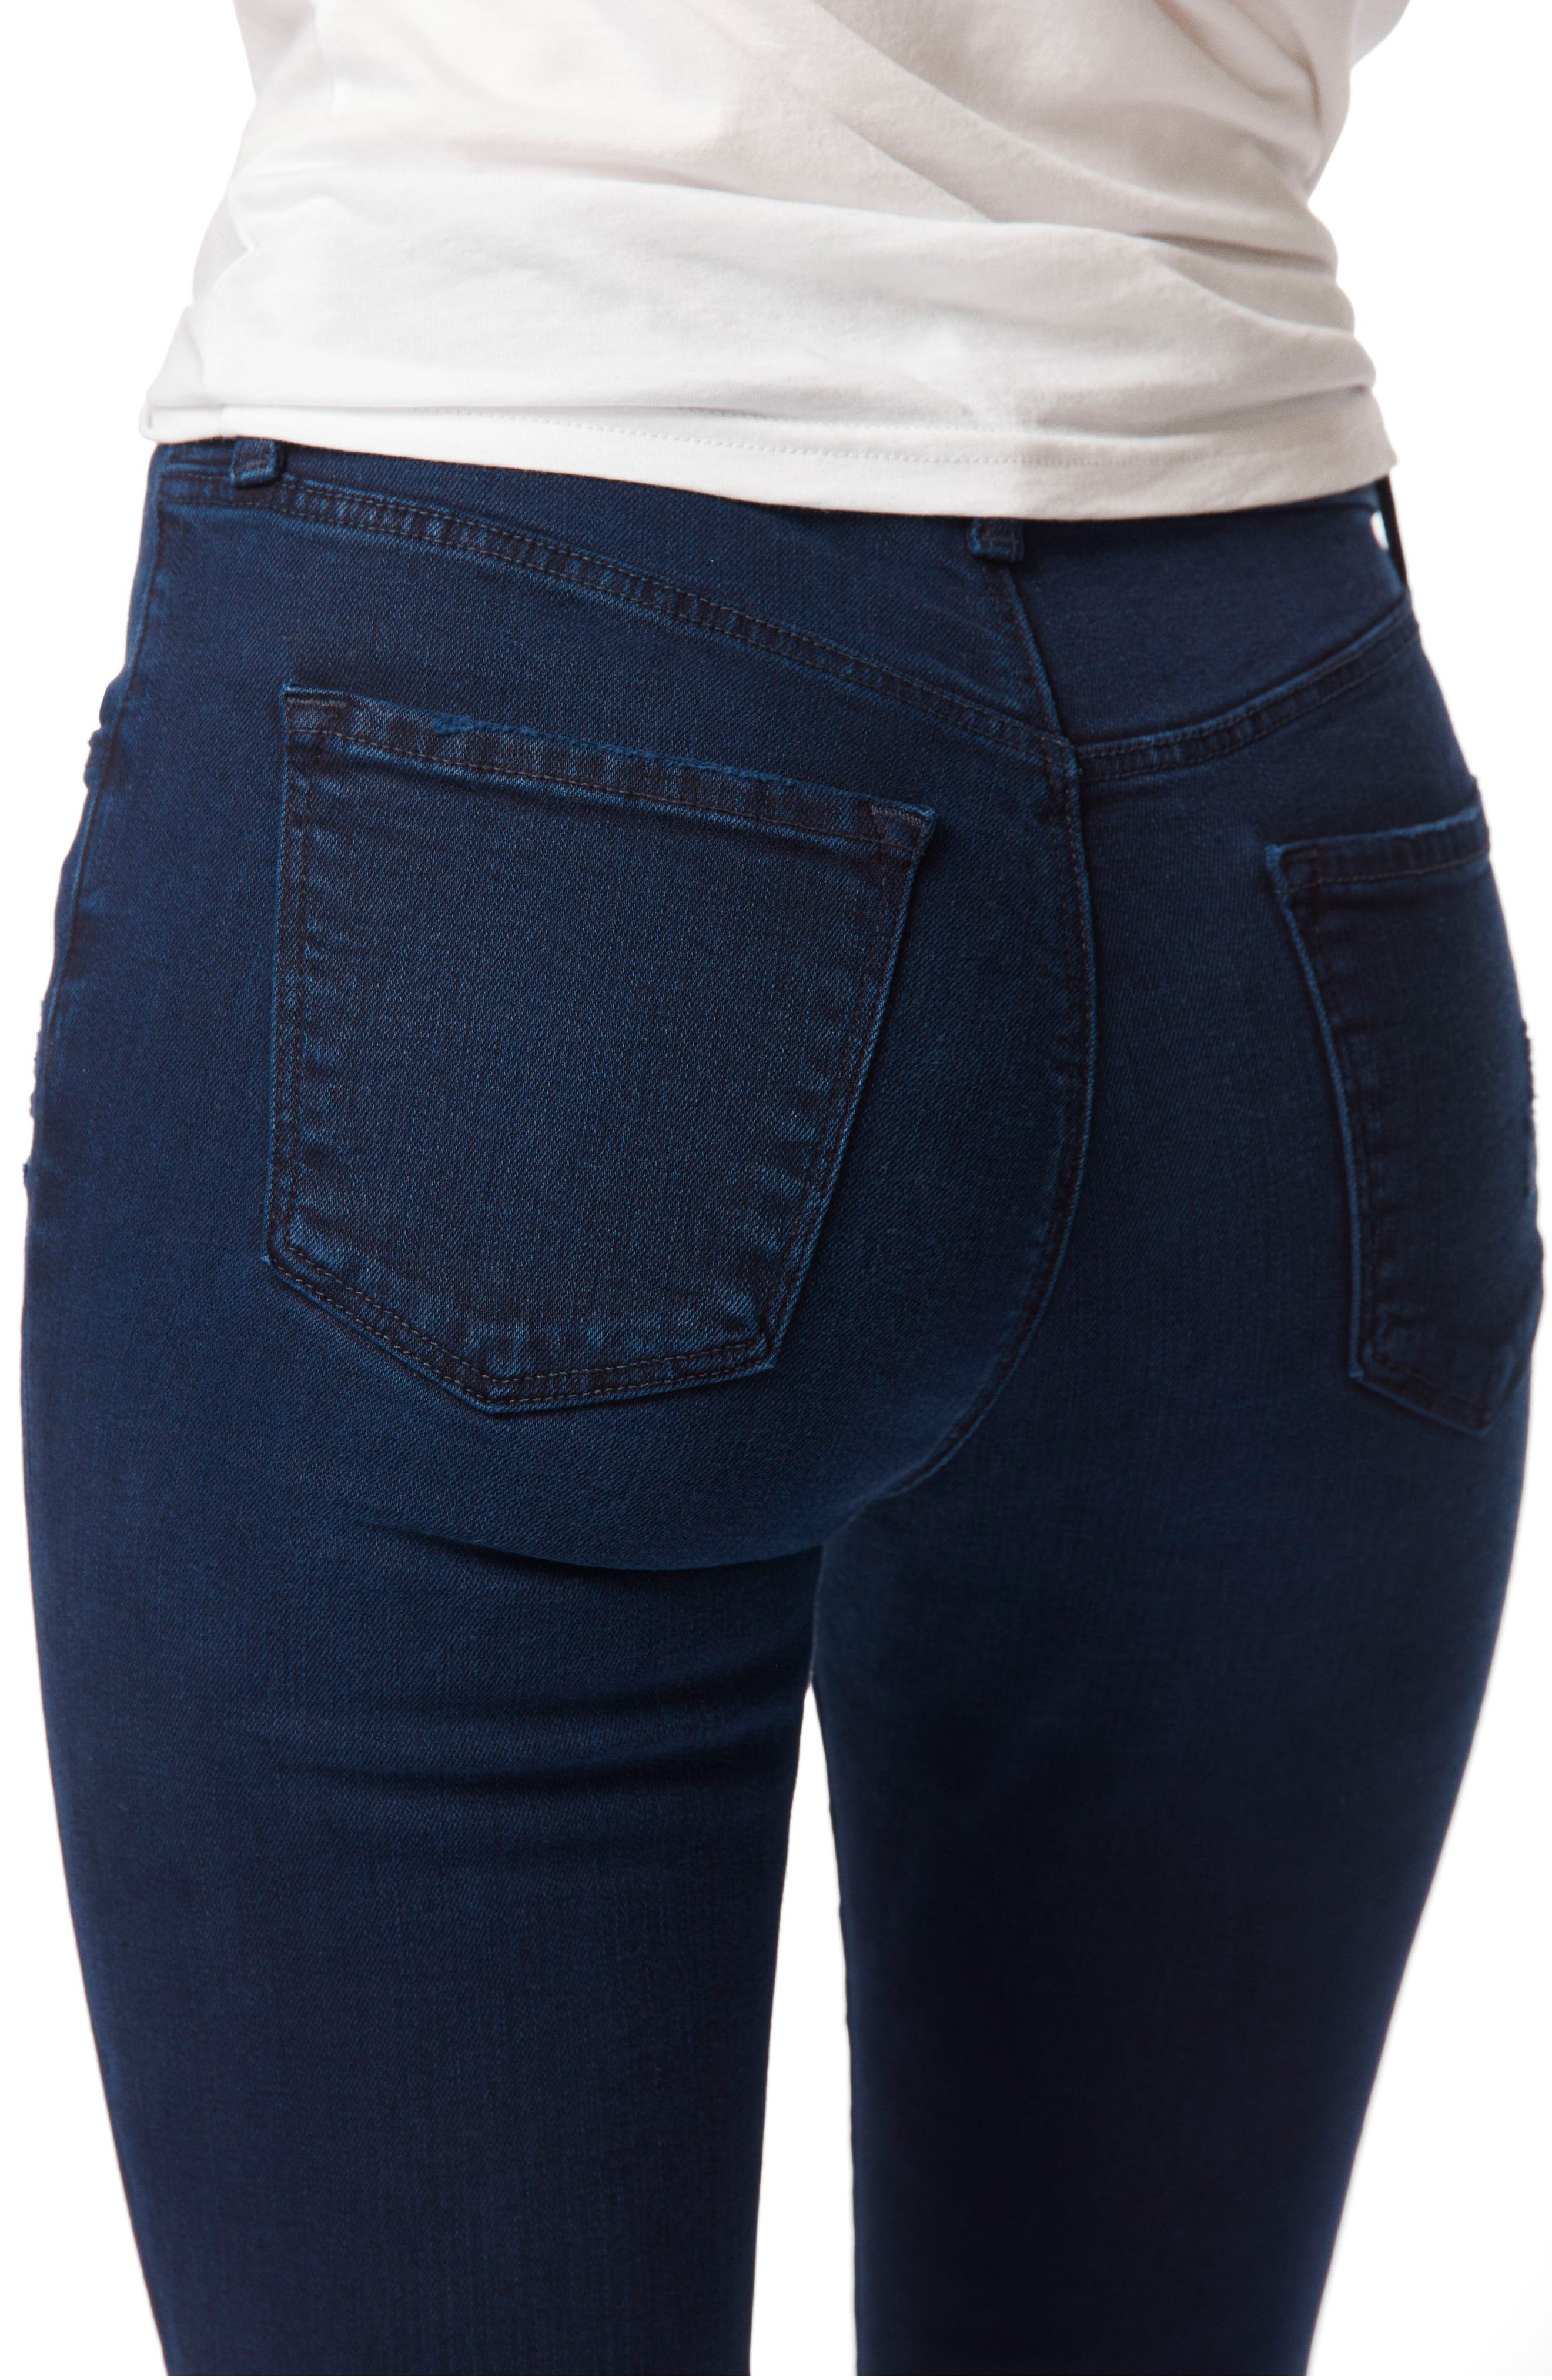 Alana Released Hem High Rise Crop Skinny Jeans,                             Alternate thumbnail 4, color,                             INVOKE DESTRUCT